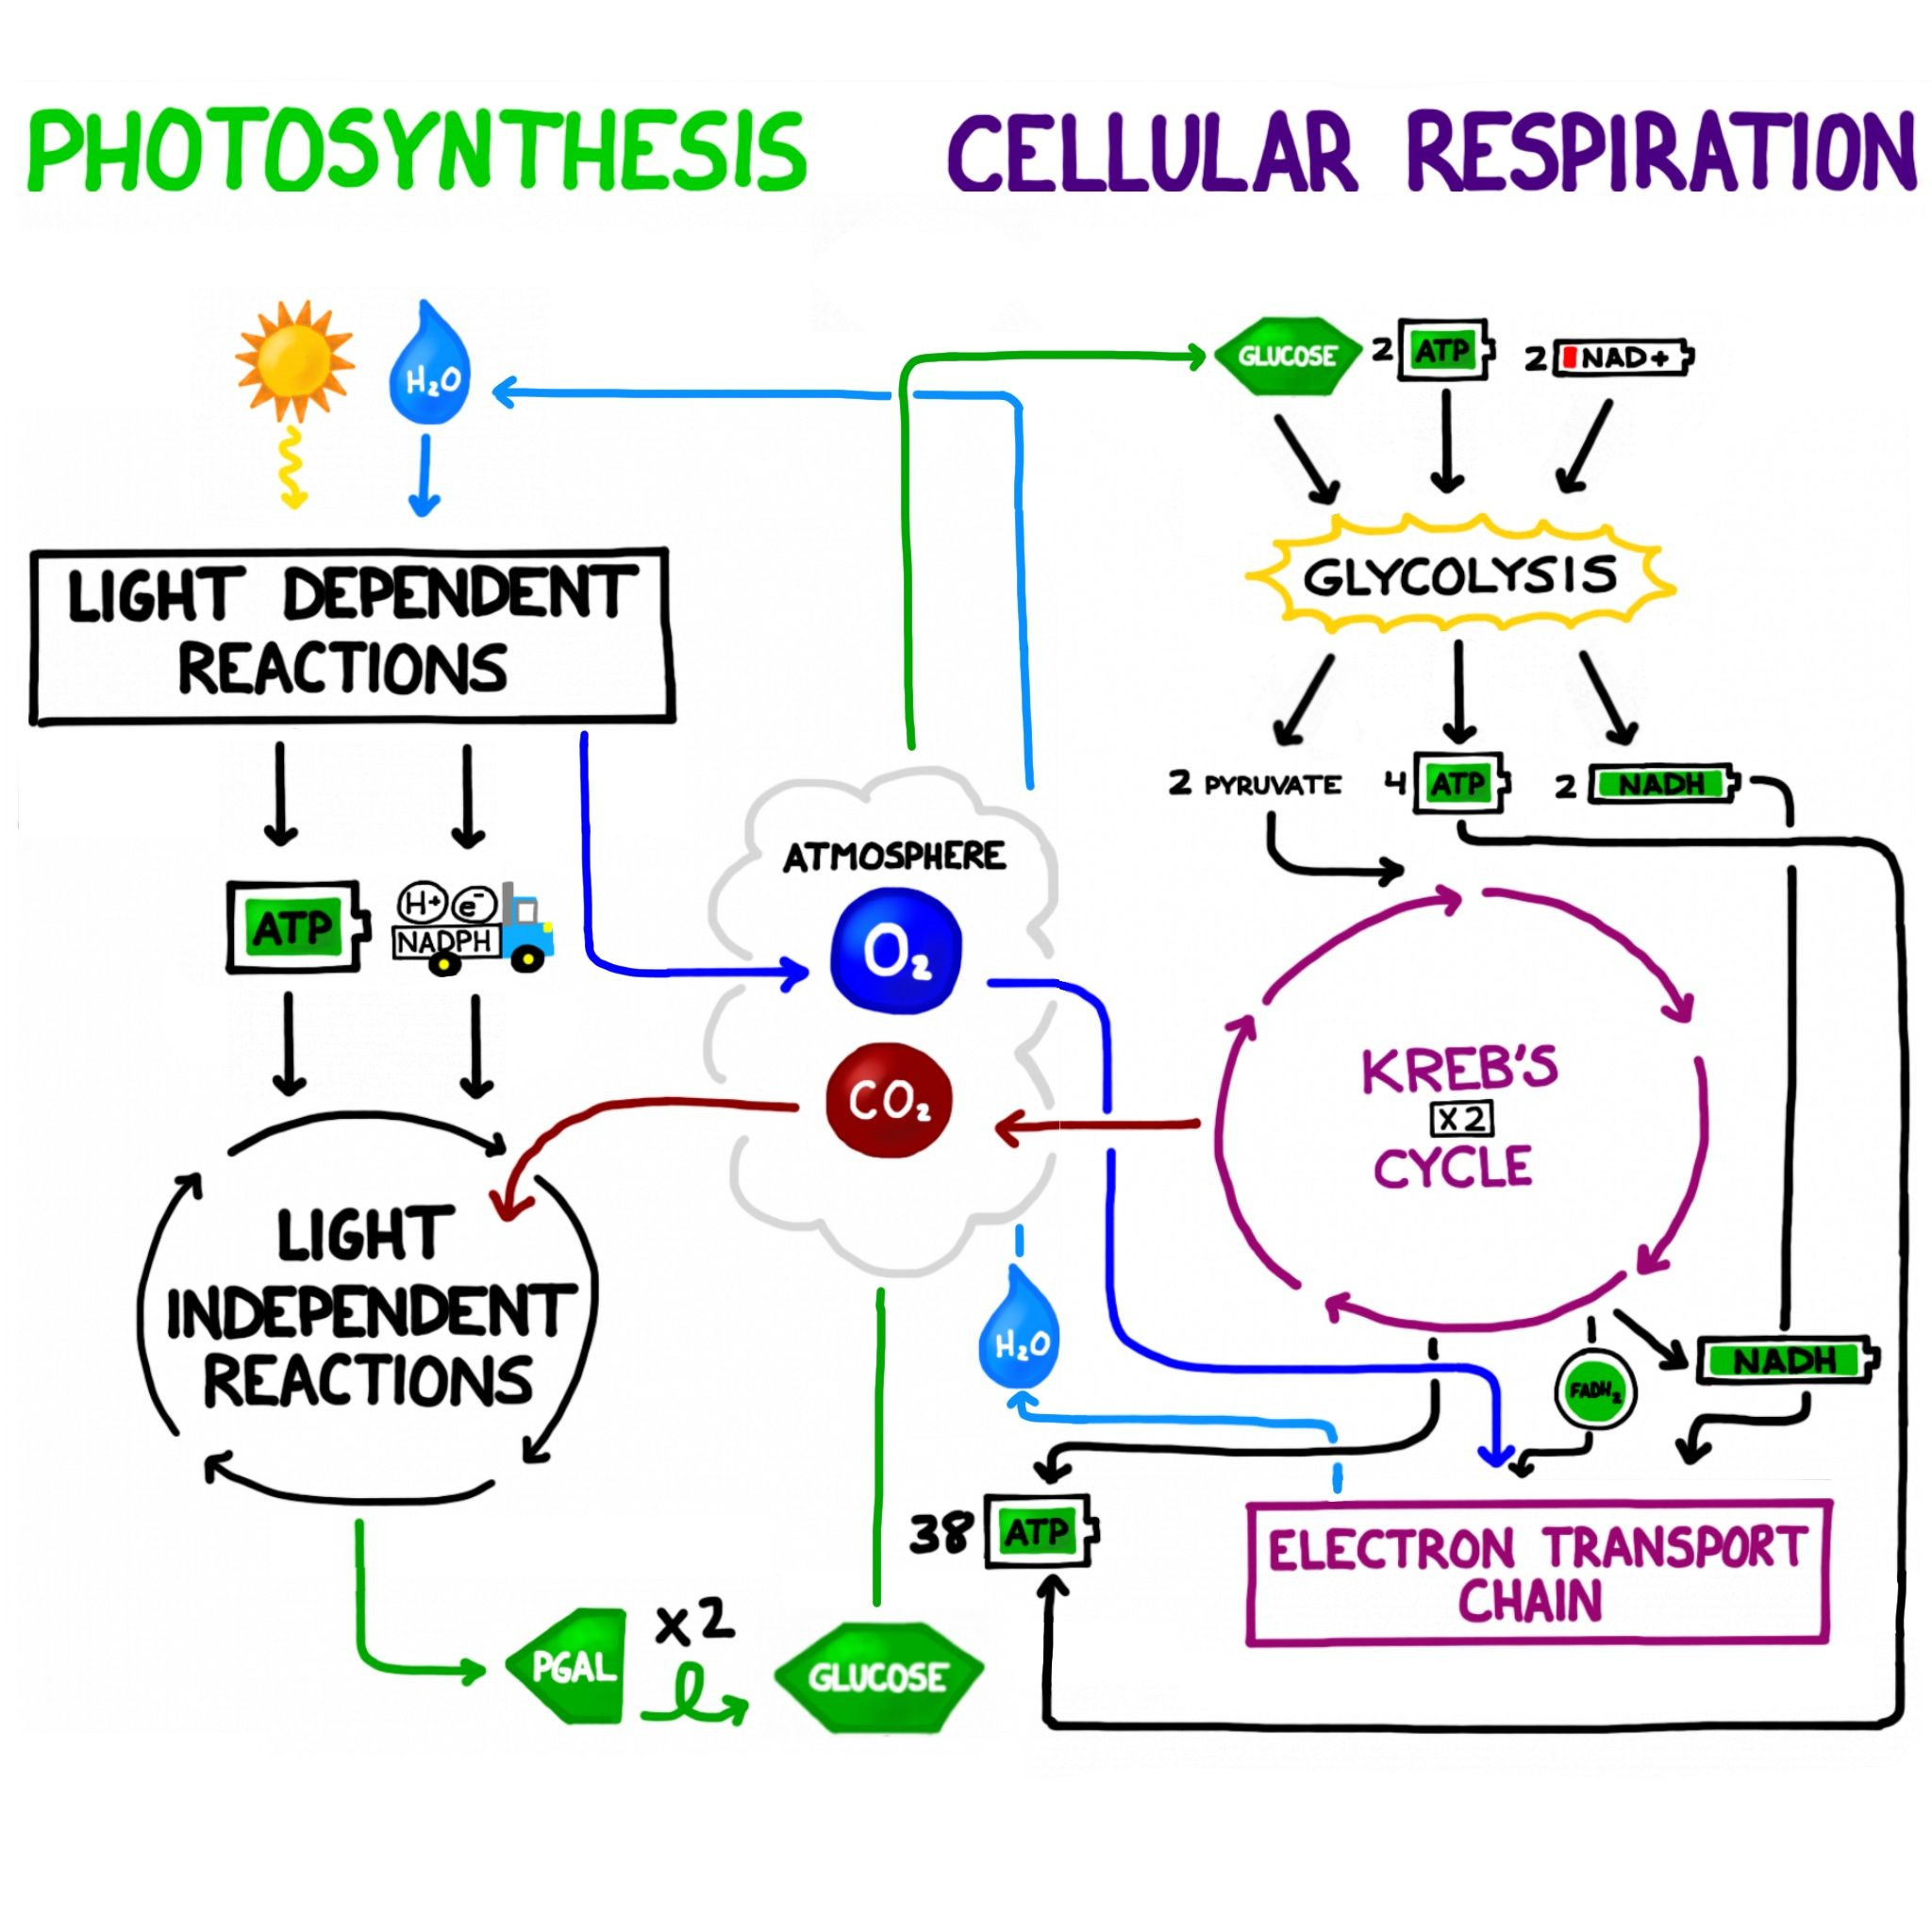 30 Cellular Respiration Review Worksheet